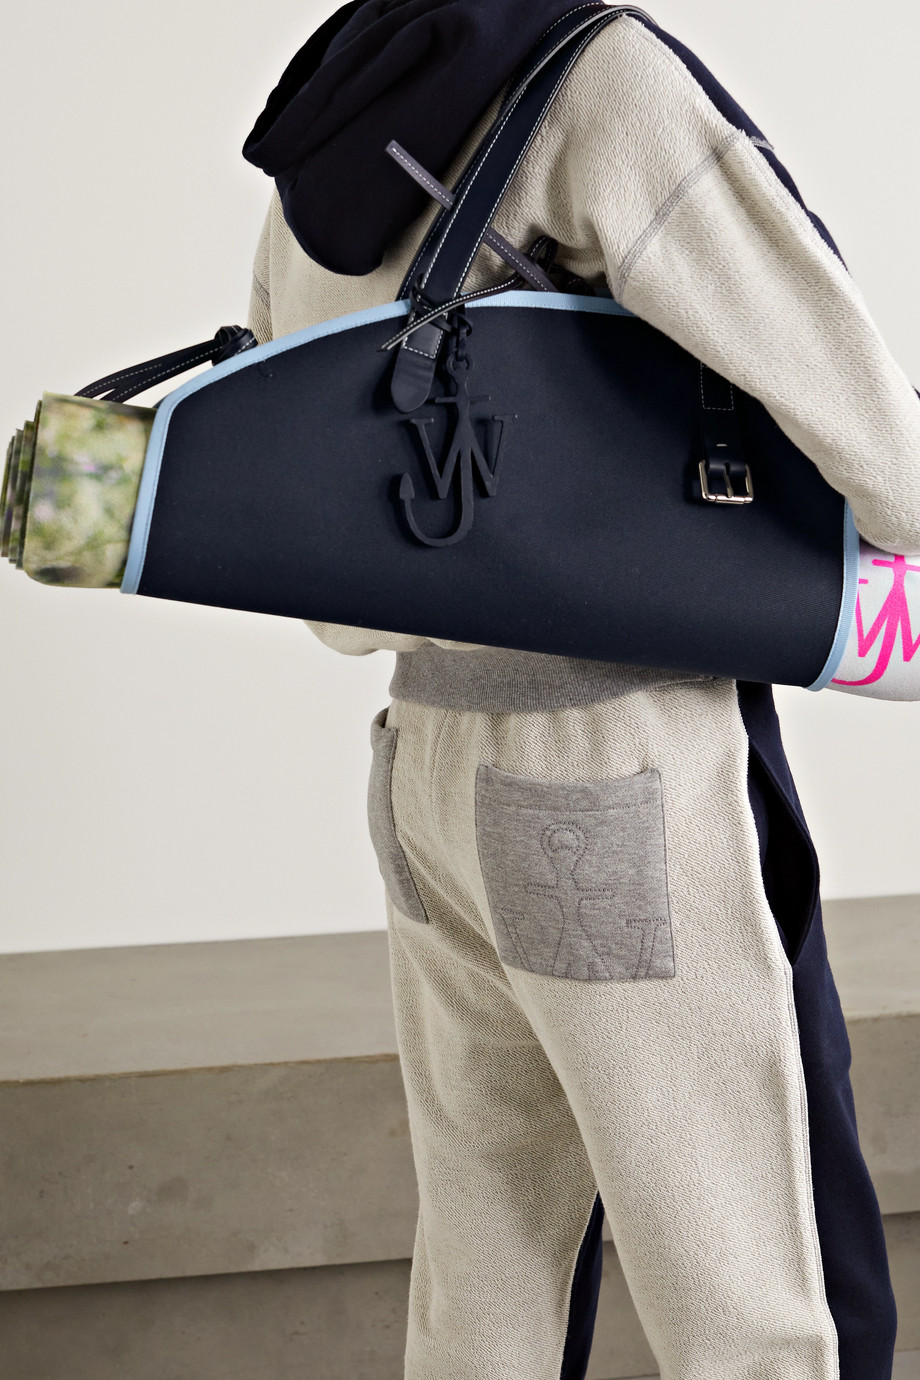 JW ANDERSON Floral-print yoga mat and leather-trimmed canvas bag